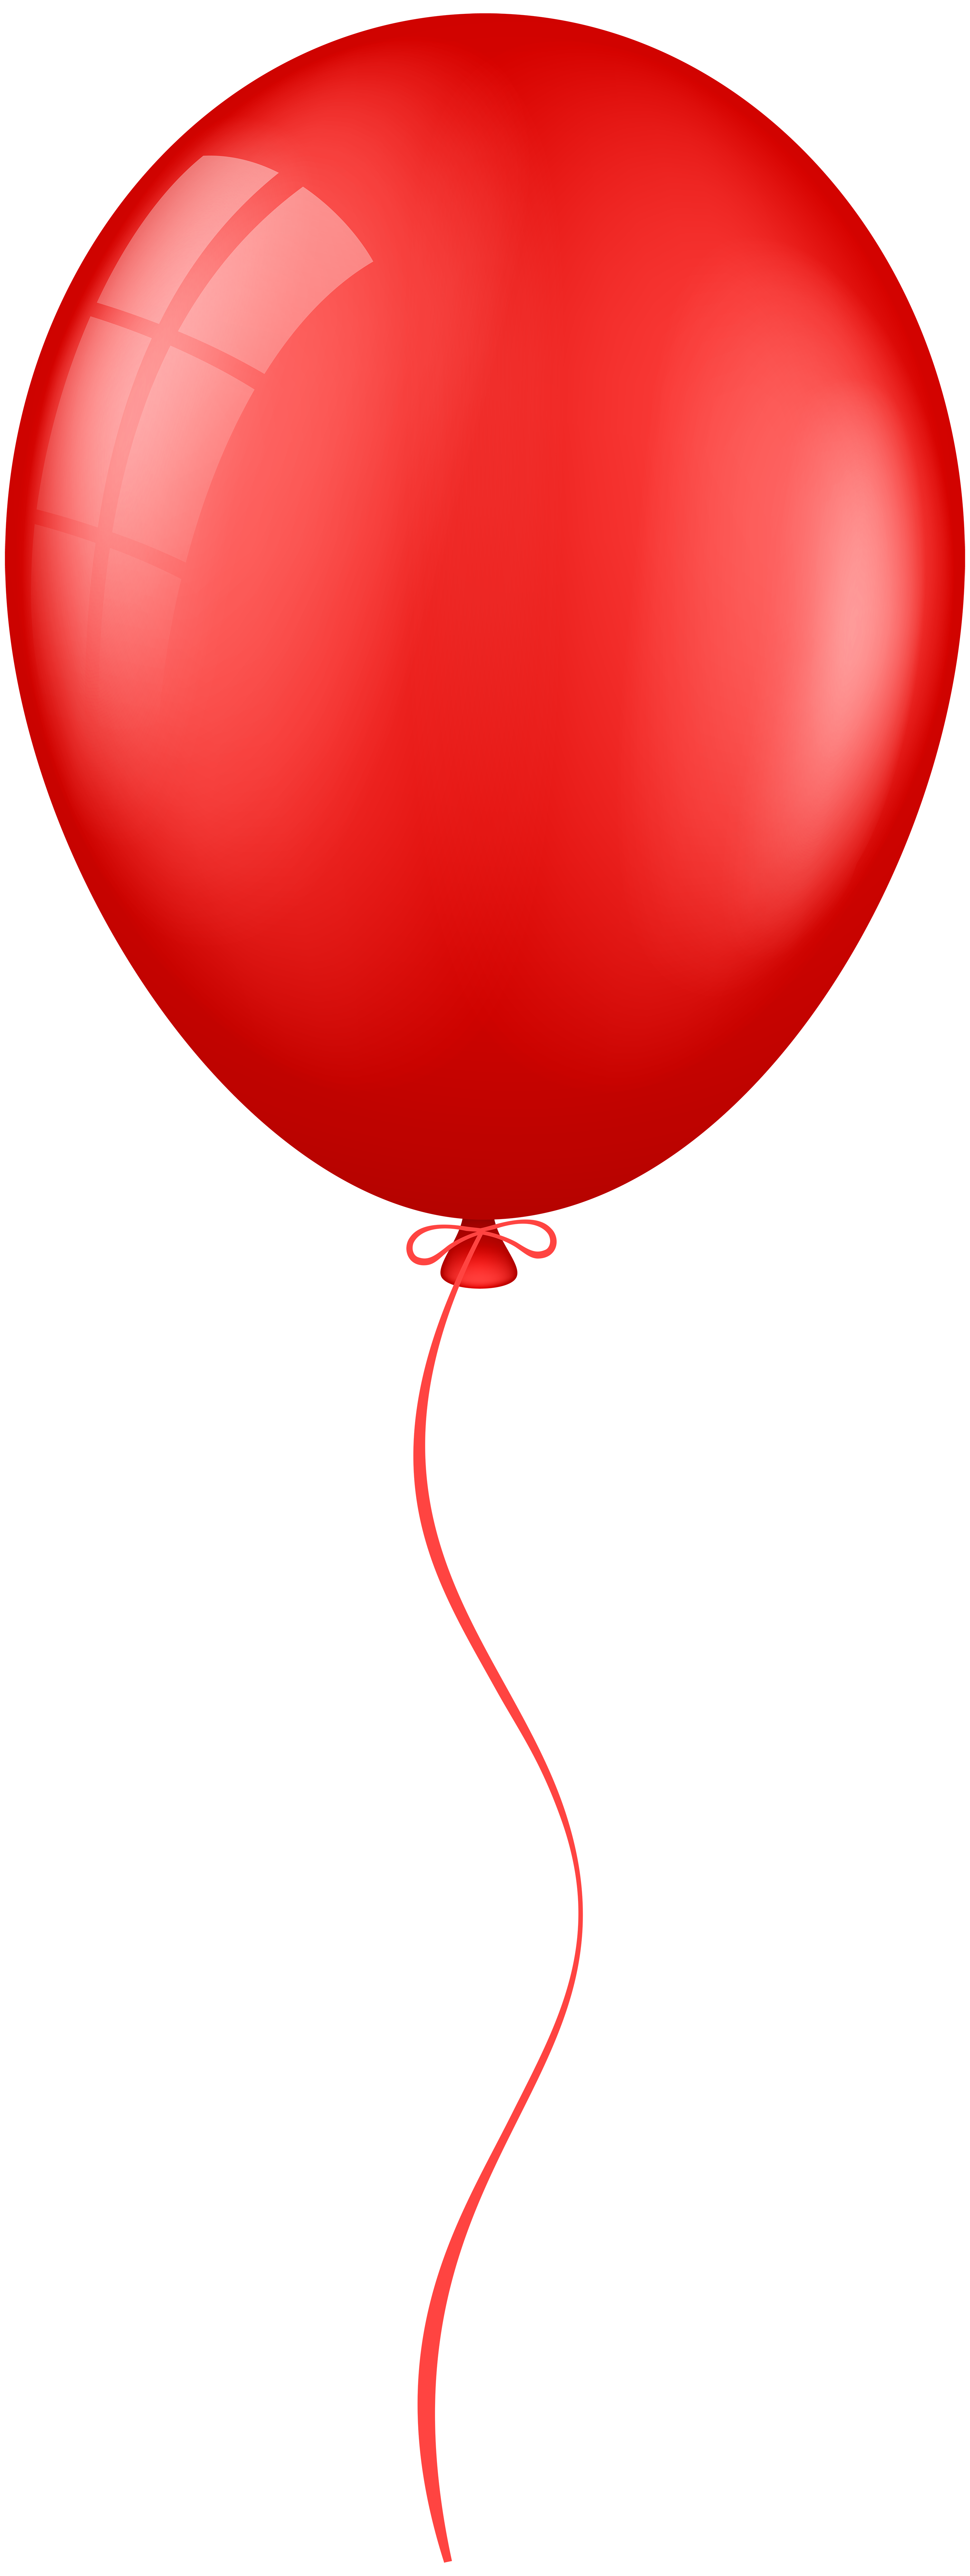 Balloon png clip art. Square clipart red color